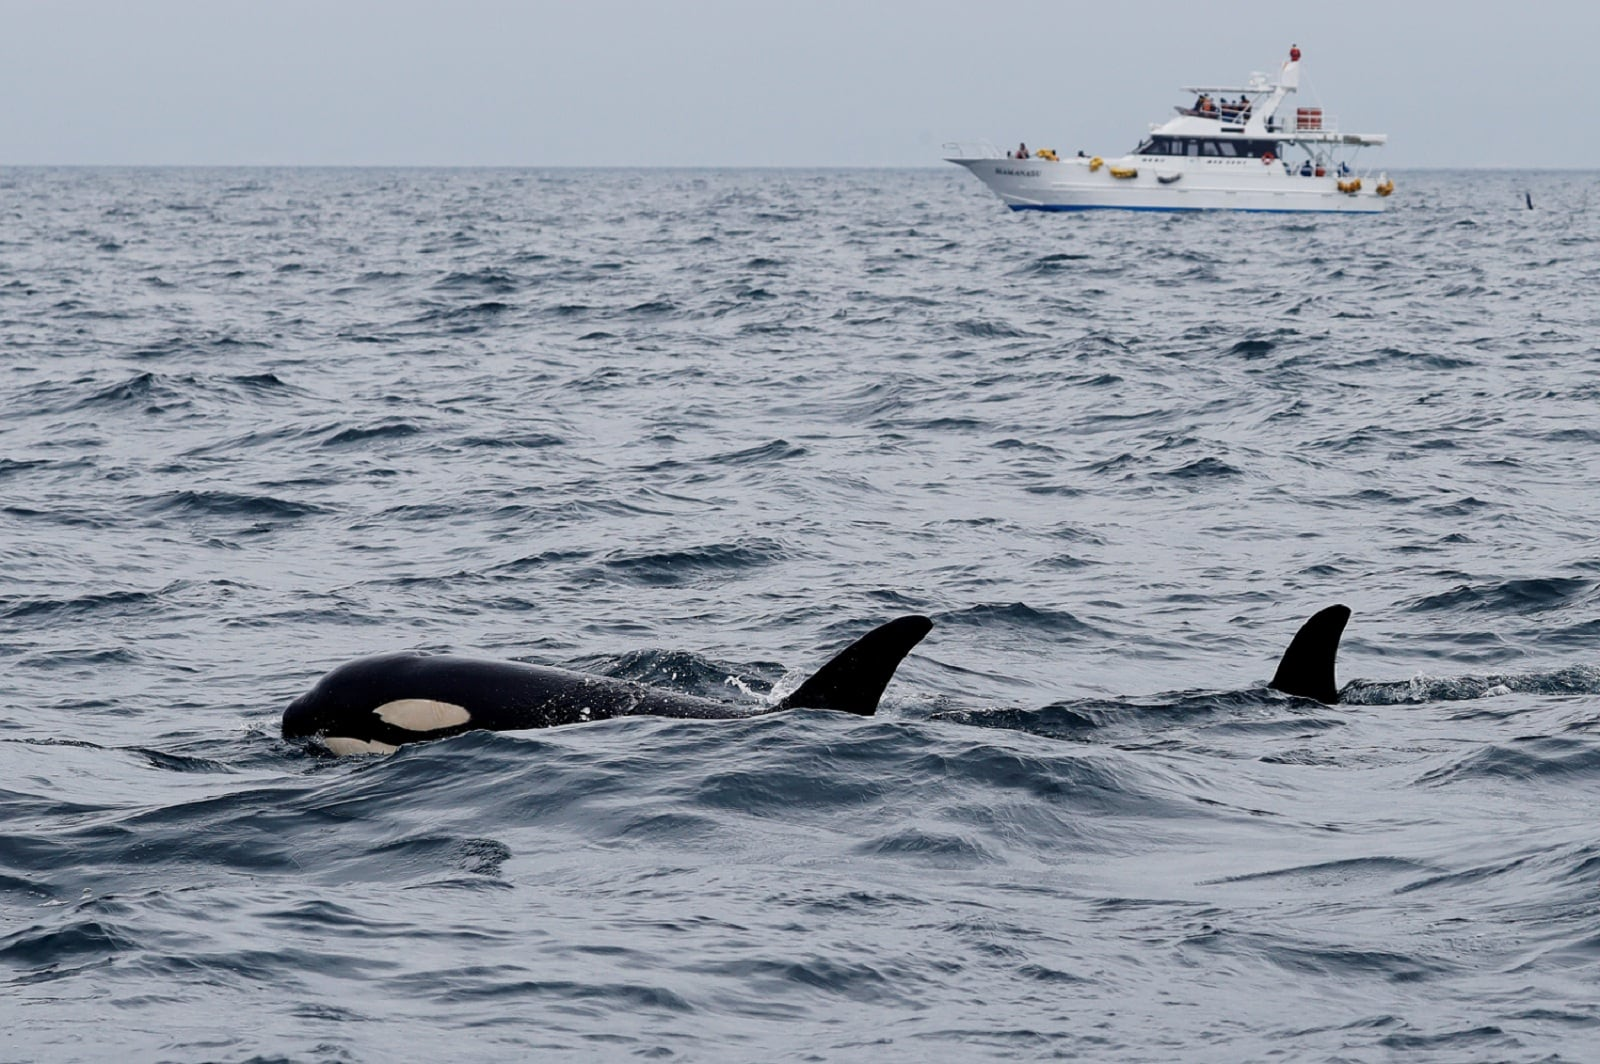 Killer whales and a whale watching tour boat are pictured in the sea near Rausu, Hokkaido, Japan, July 1, 2019. REUTERS/Kim Kyung-Hoon.